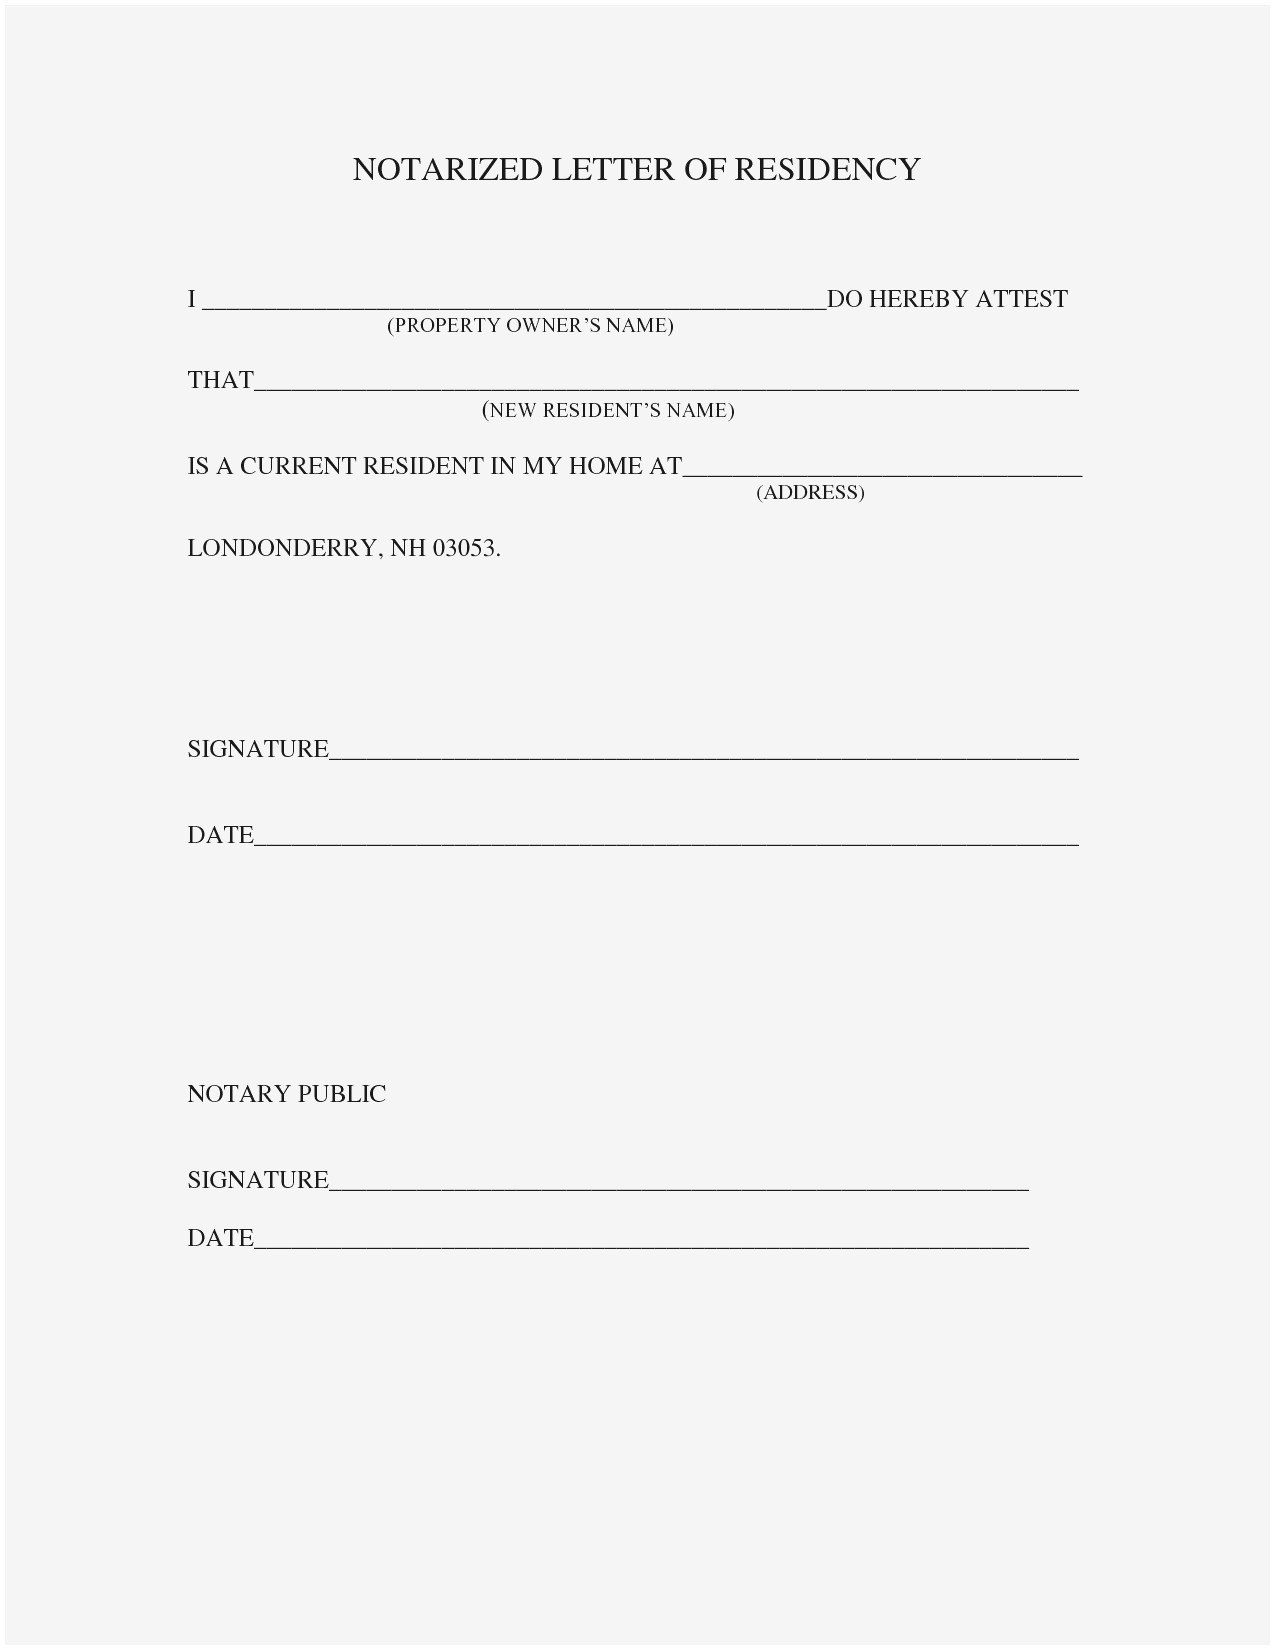 Notary Statement For Signature And Notarized Custody Agreement Within Notarized Custody Agreement Template